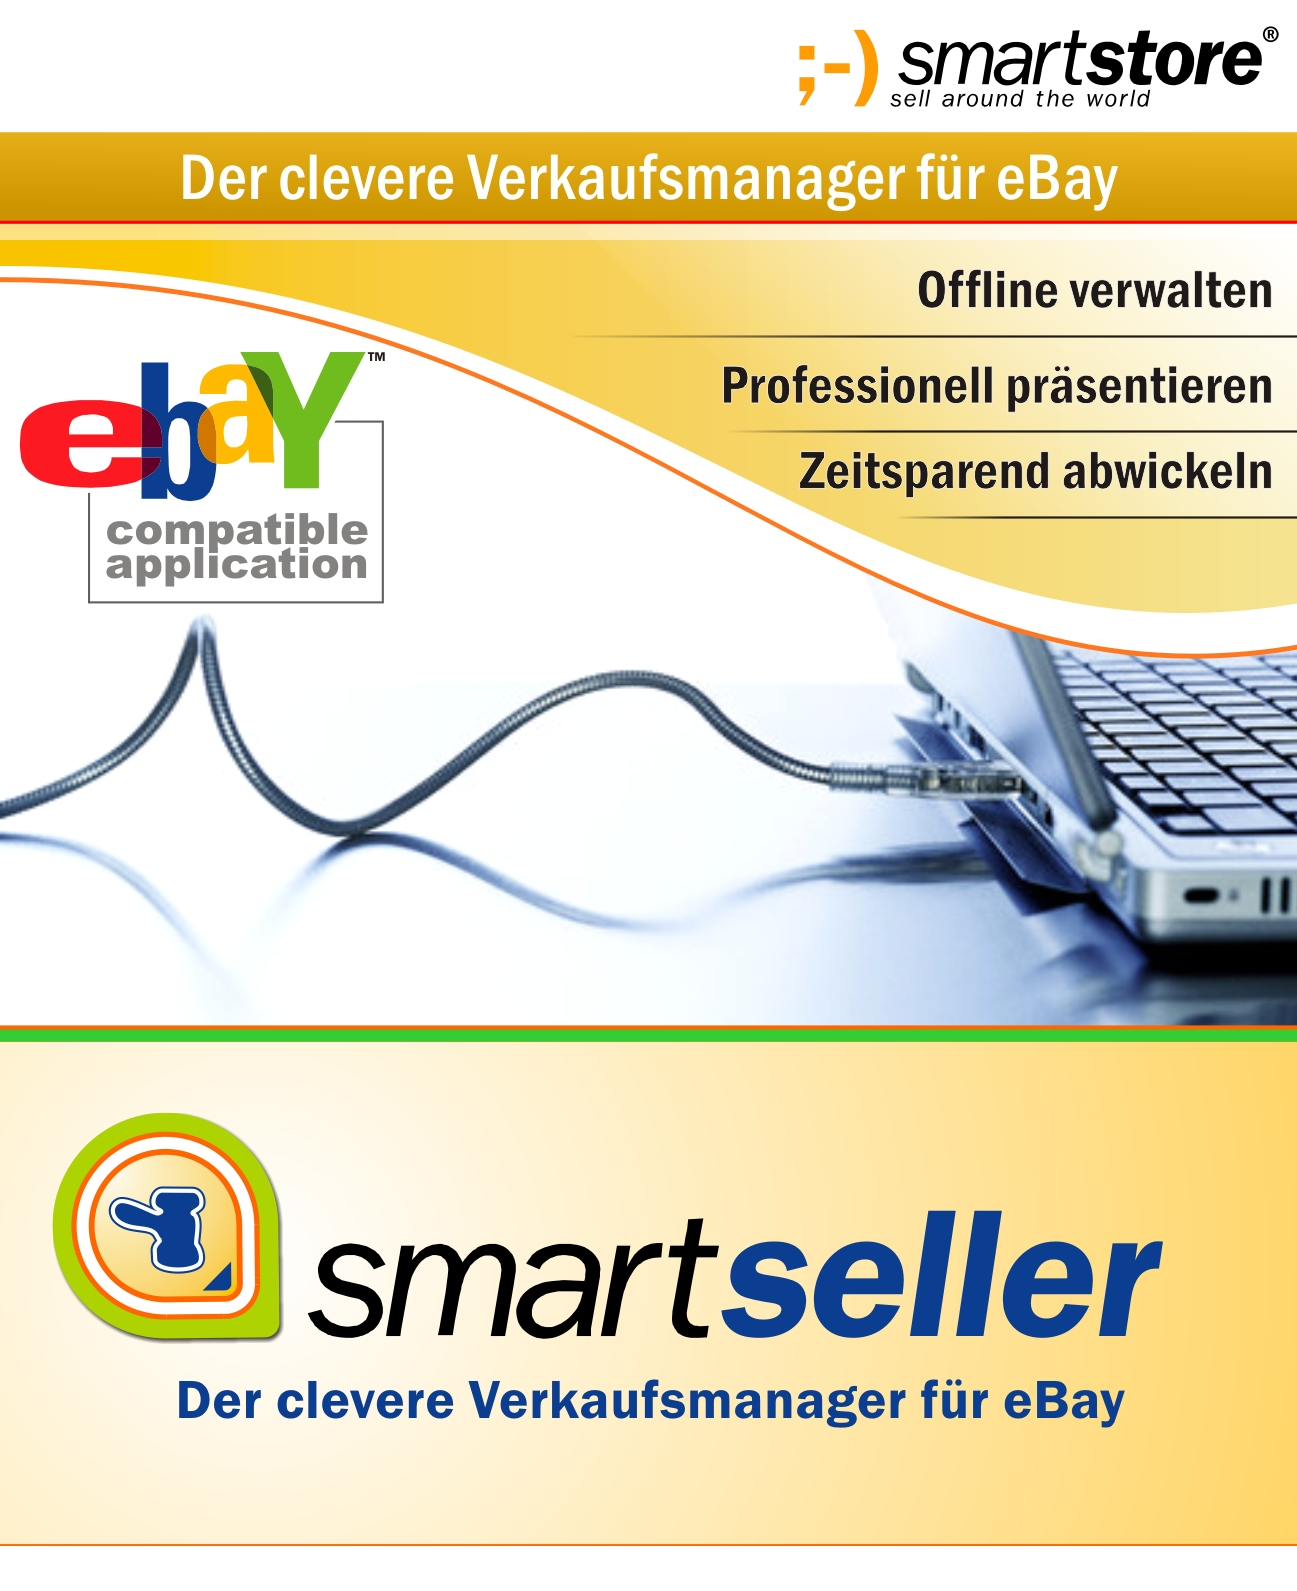 The eBay SmartSeller is published